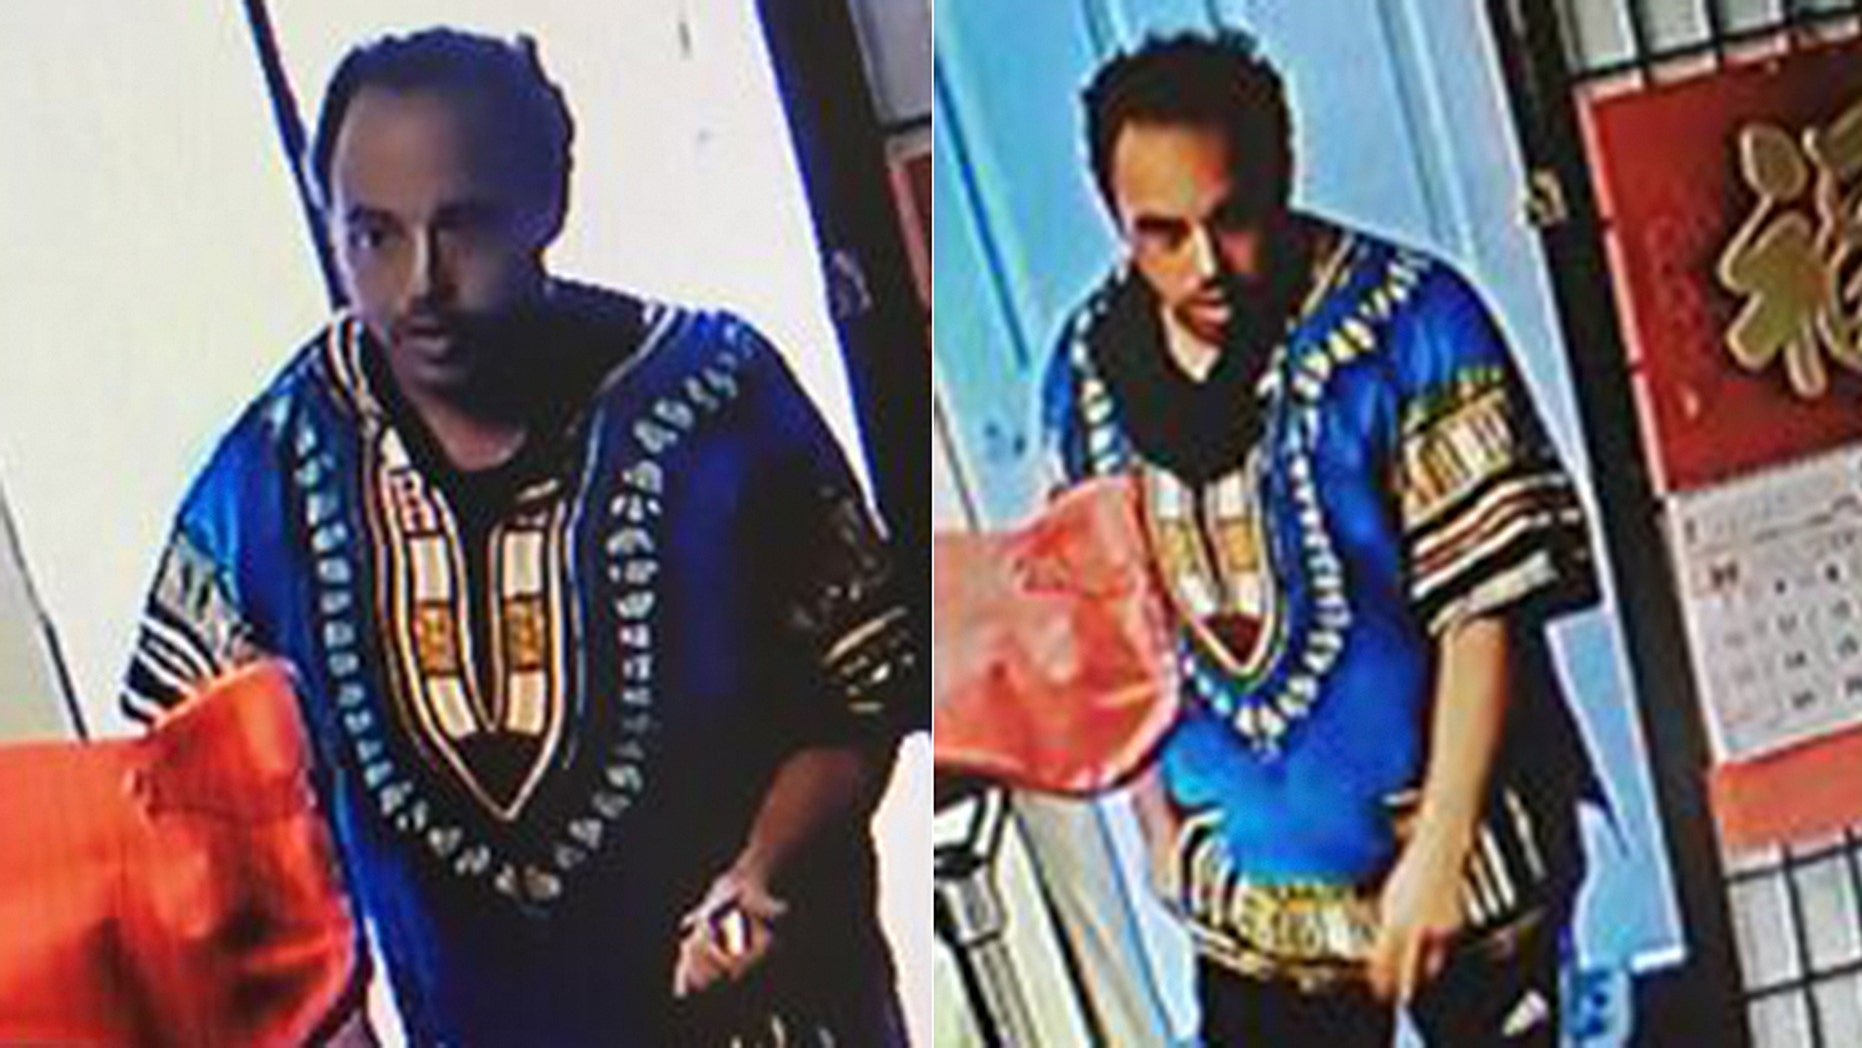 Broward County detectives want to find this man, saying he might have been the last person who saw Daying Li alive before she was killed Thursday at the Bing Bing Spa, a massage parlor.